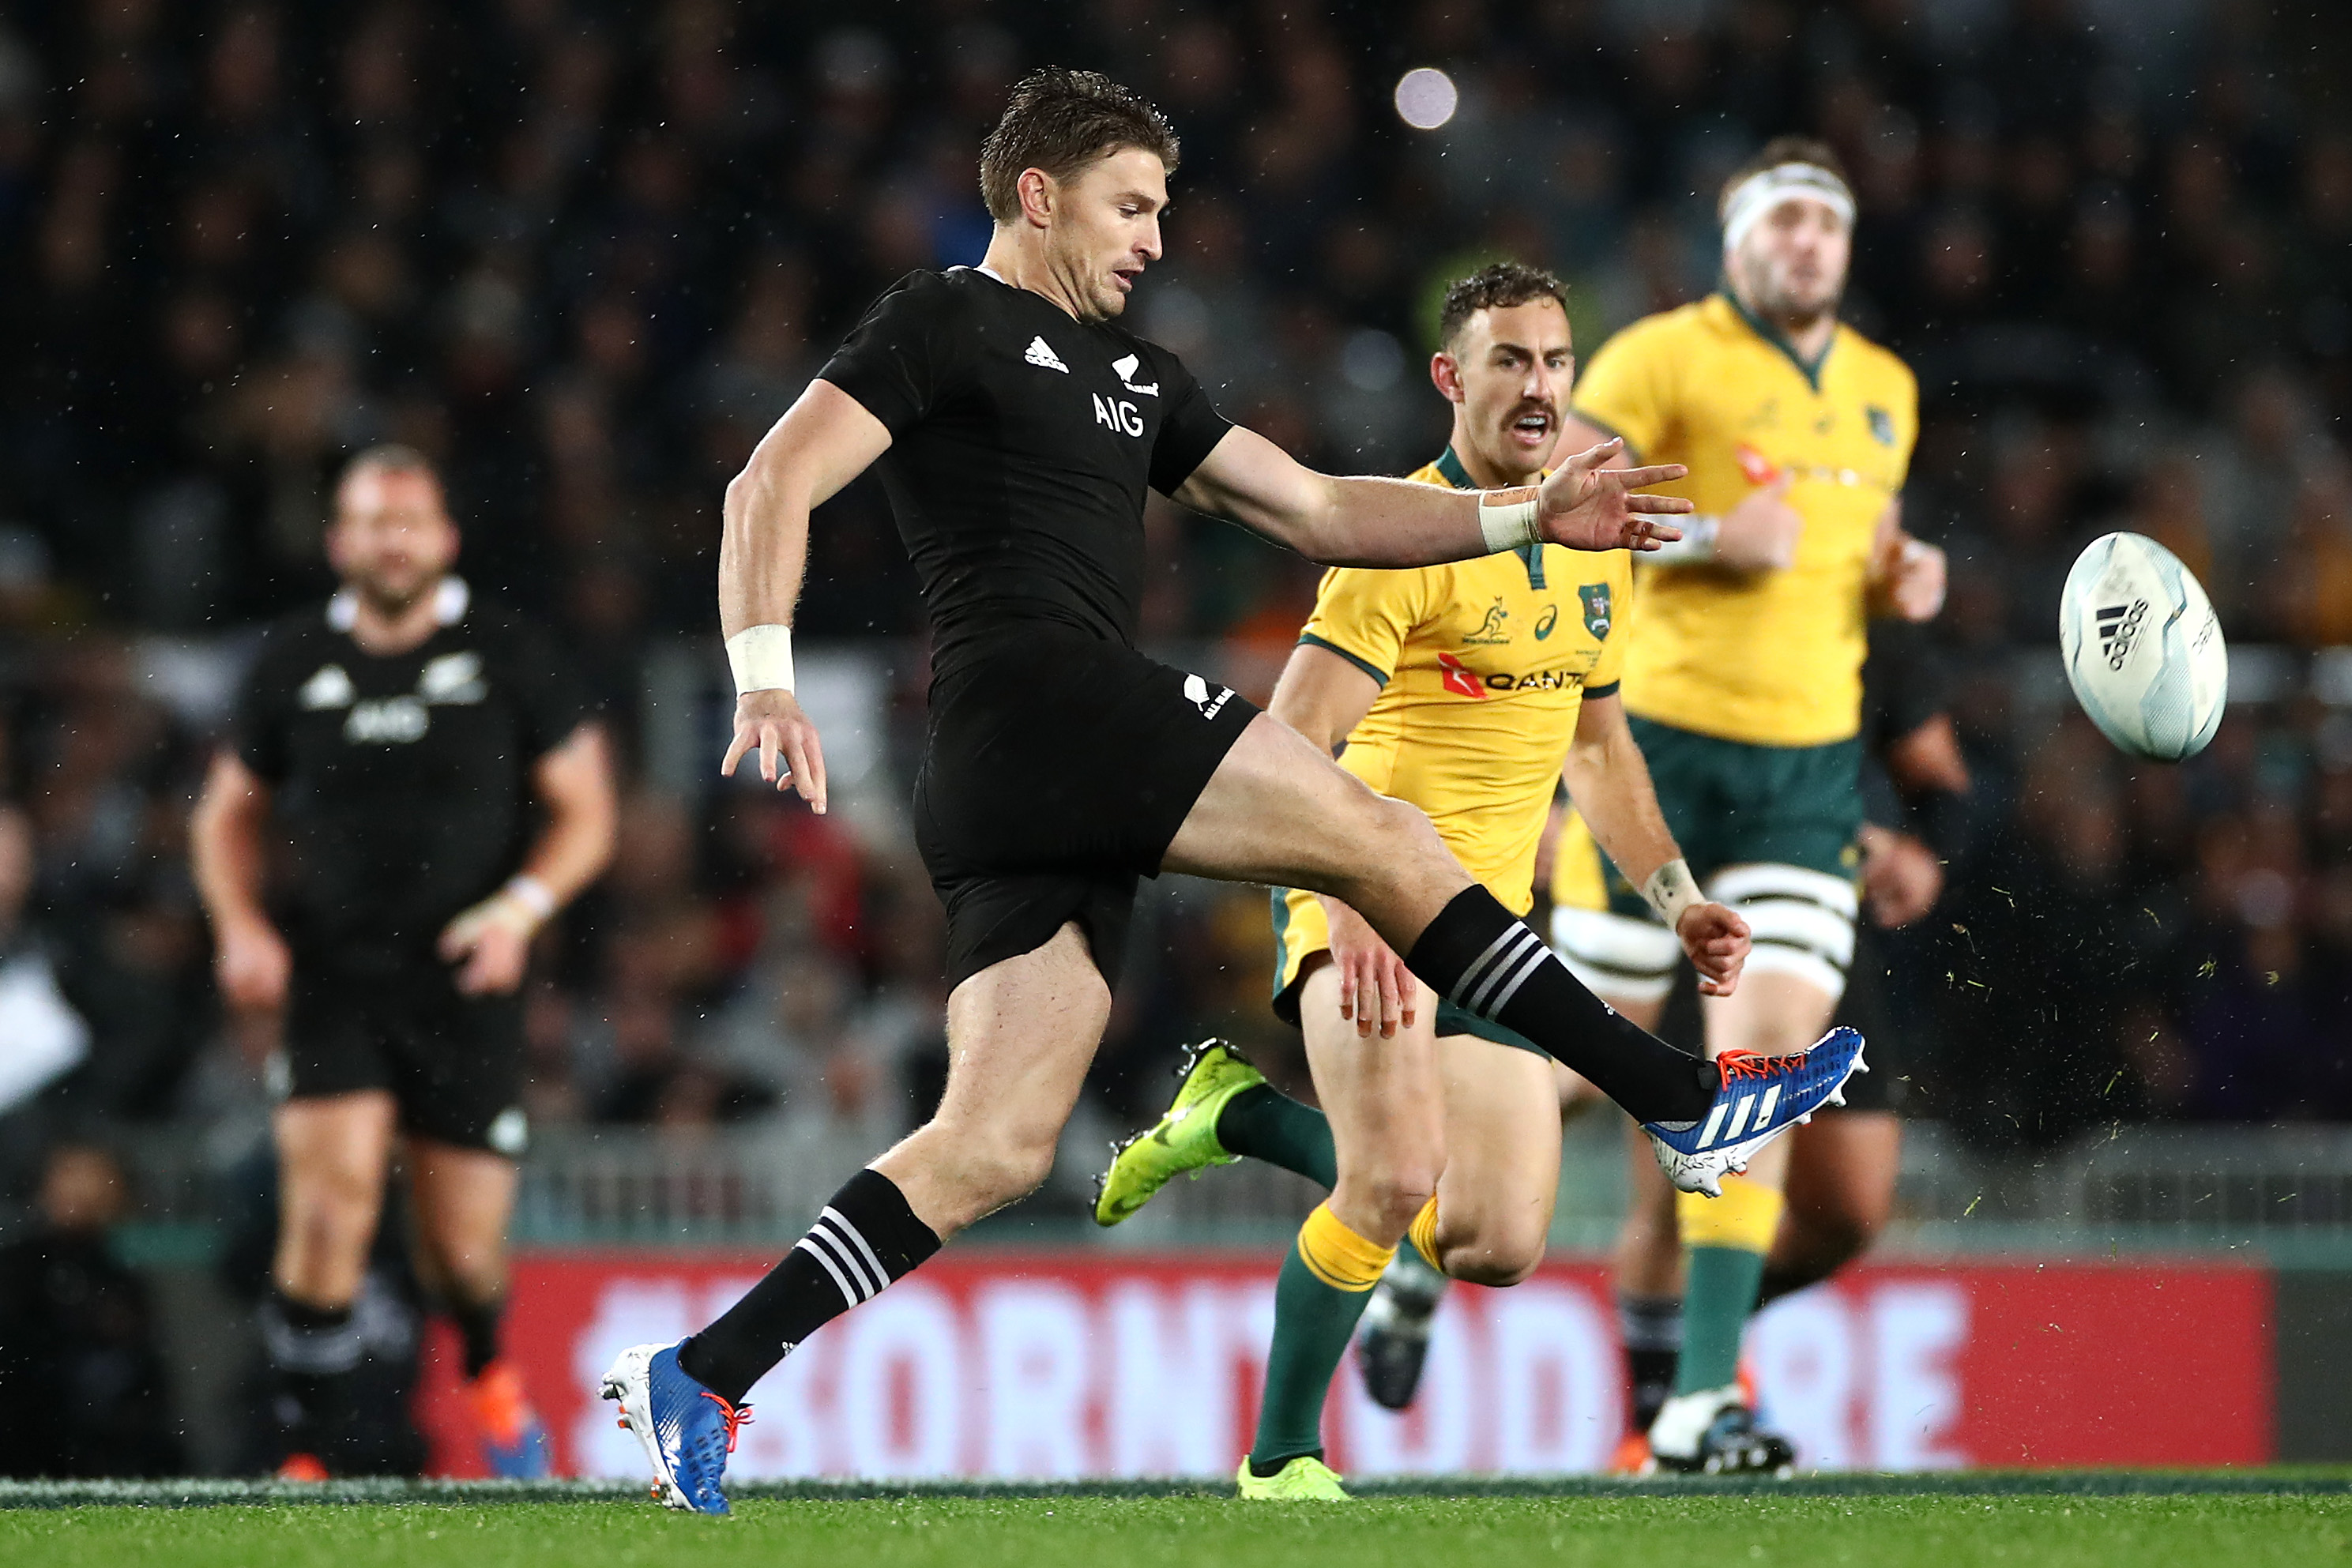 Beauden barrett all blacks